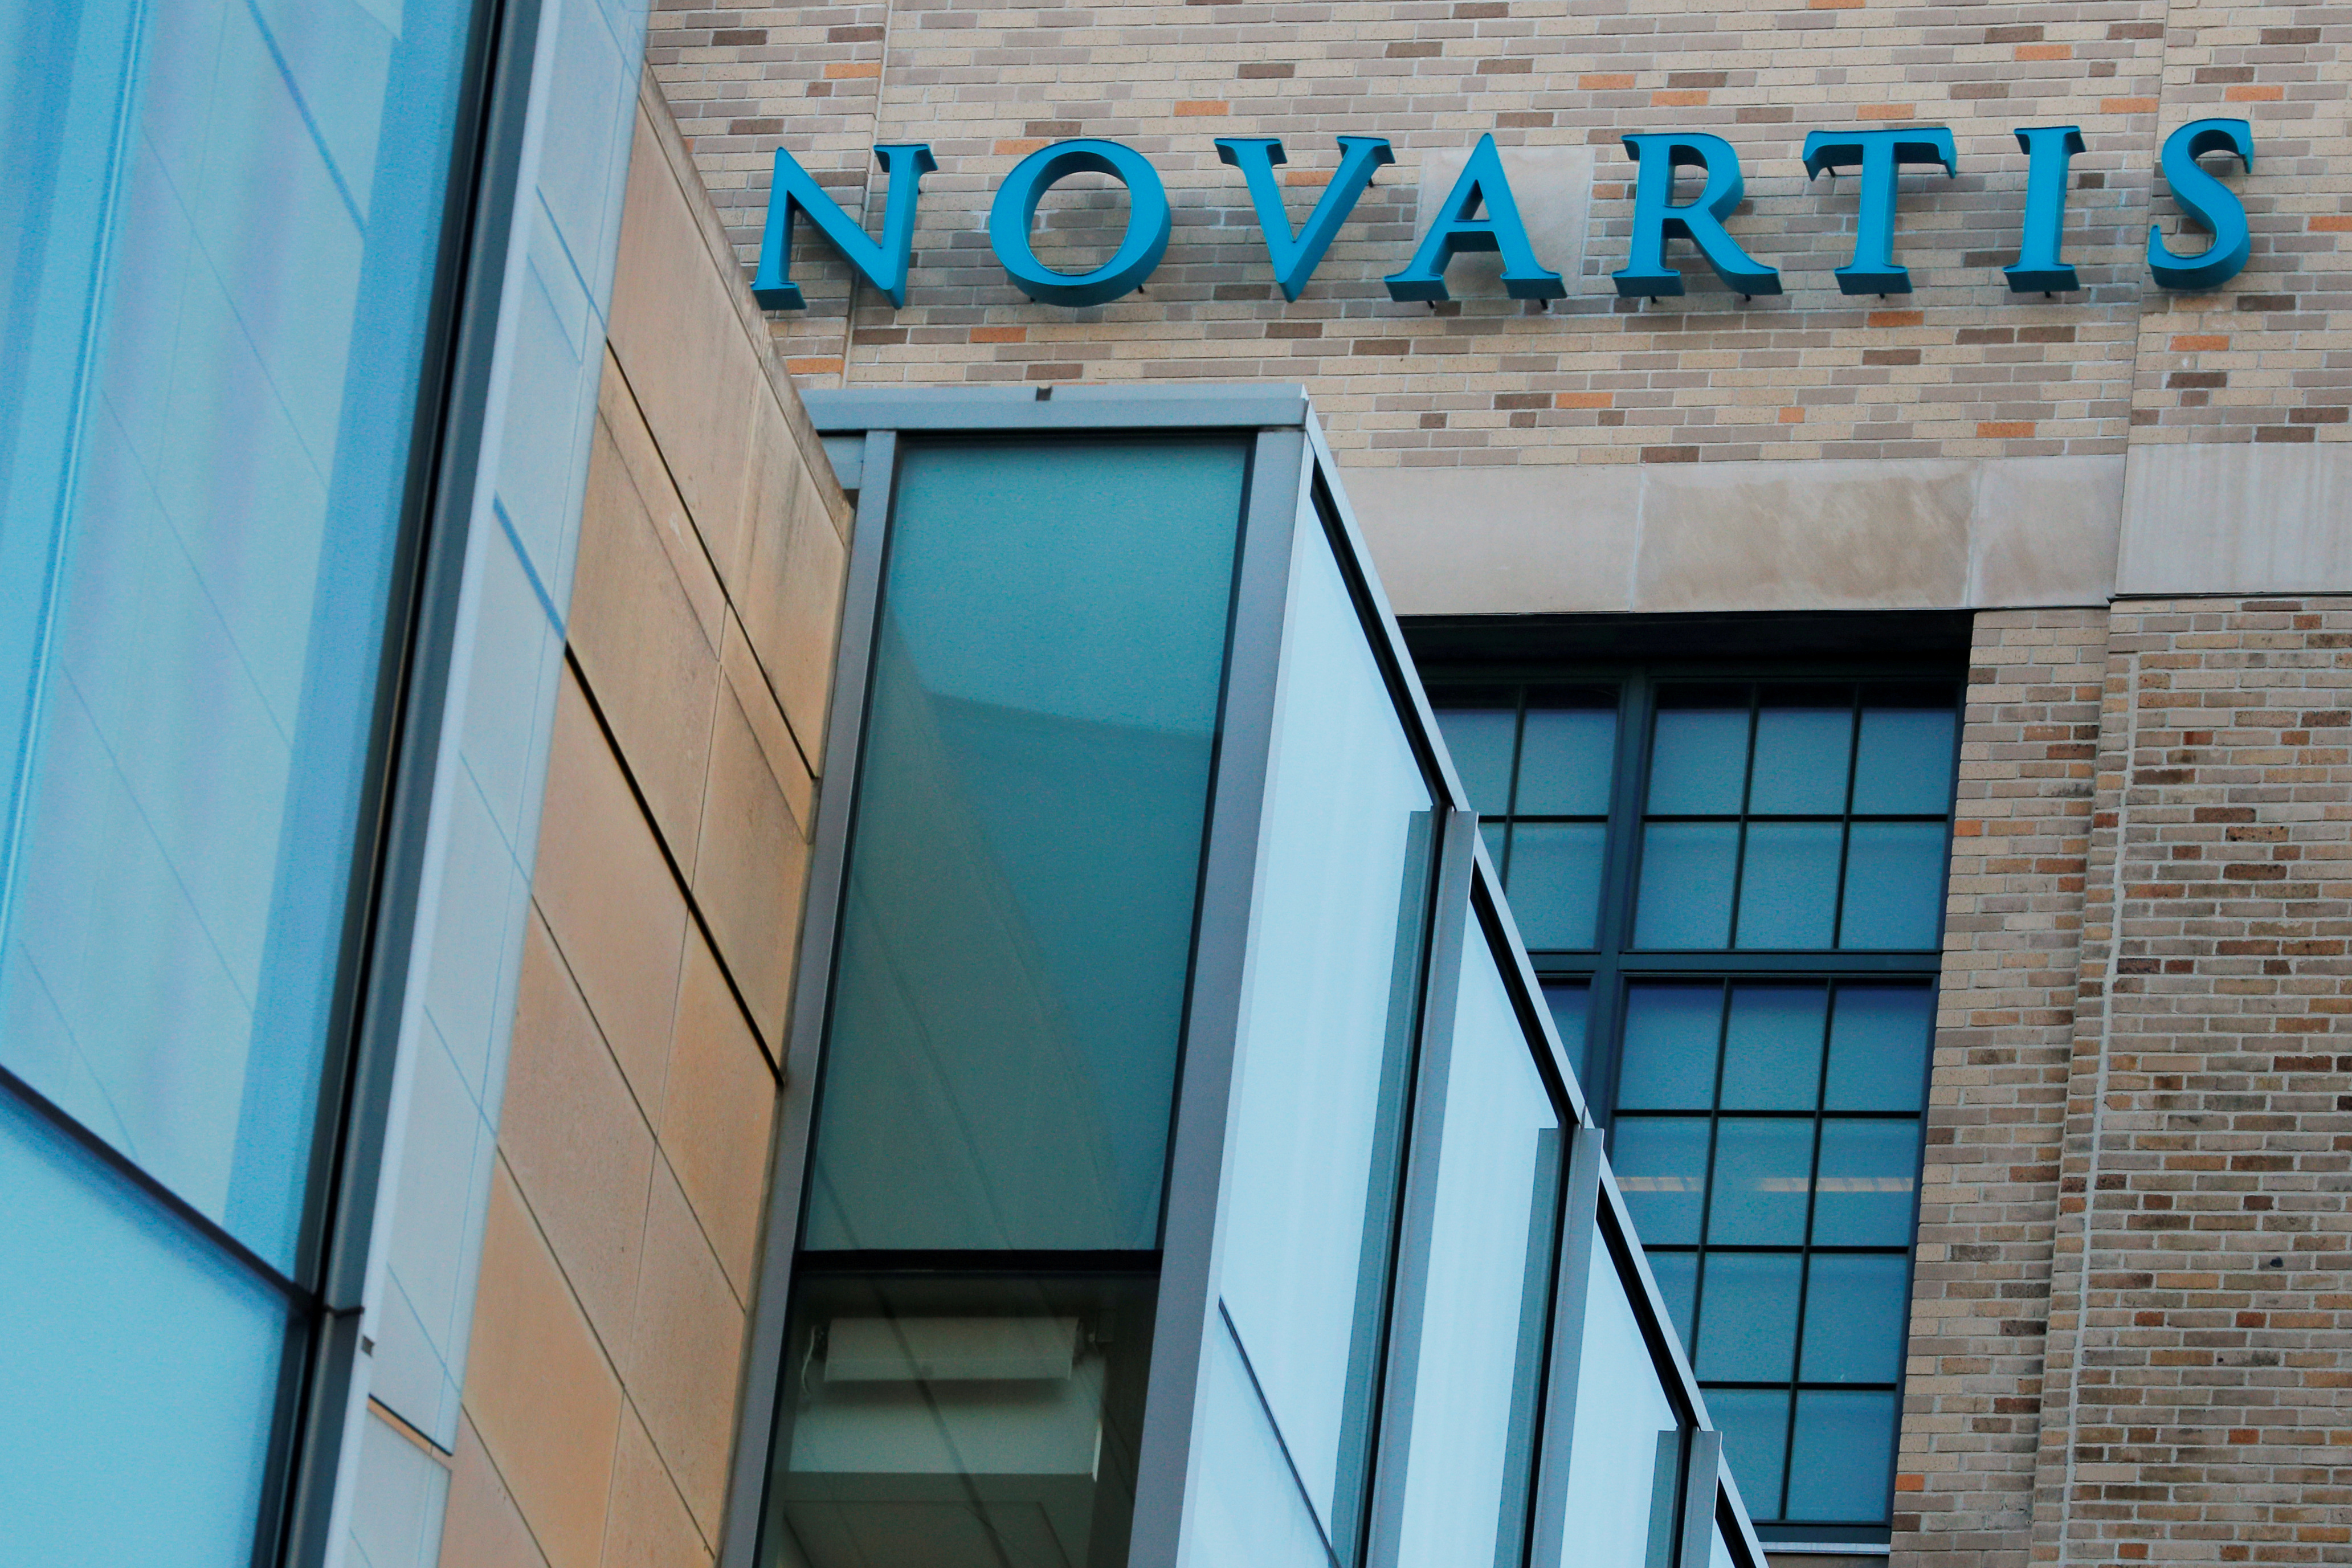 A sign marks Novartis' Institutes for Biomedical Research in Cambridge, Massachusetts, U.S., January 2, 2020.  Picture taken January 2, 2020. REUTERS/Brian Snyder/File Photo